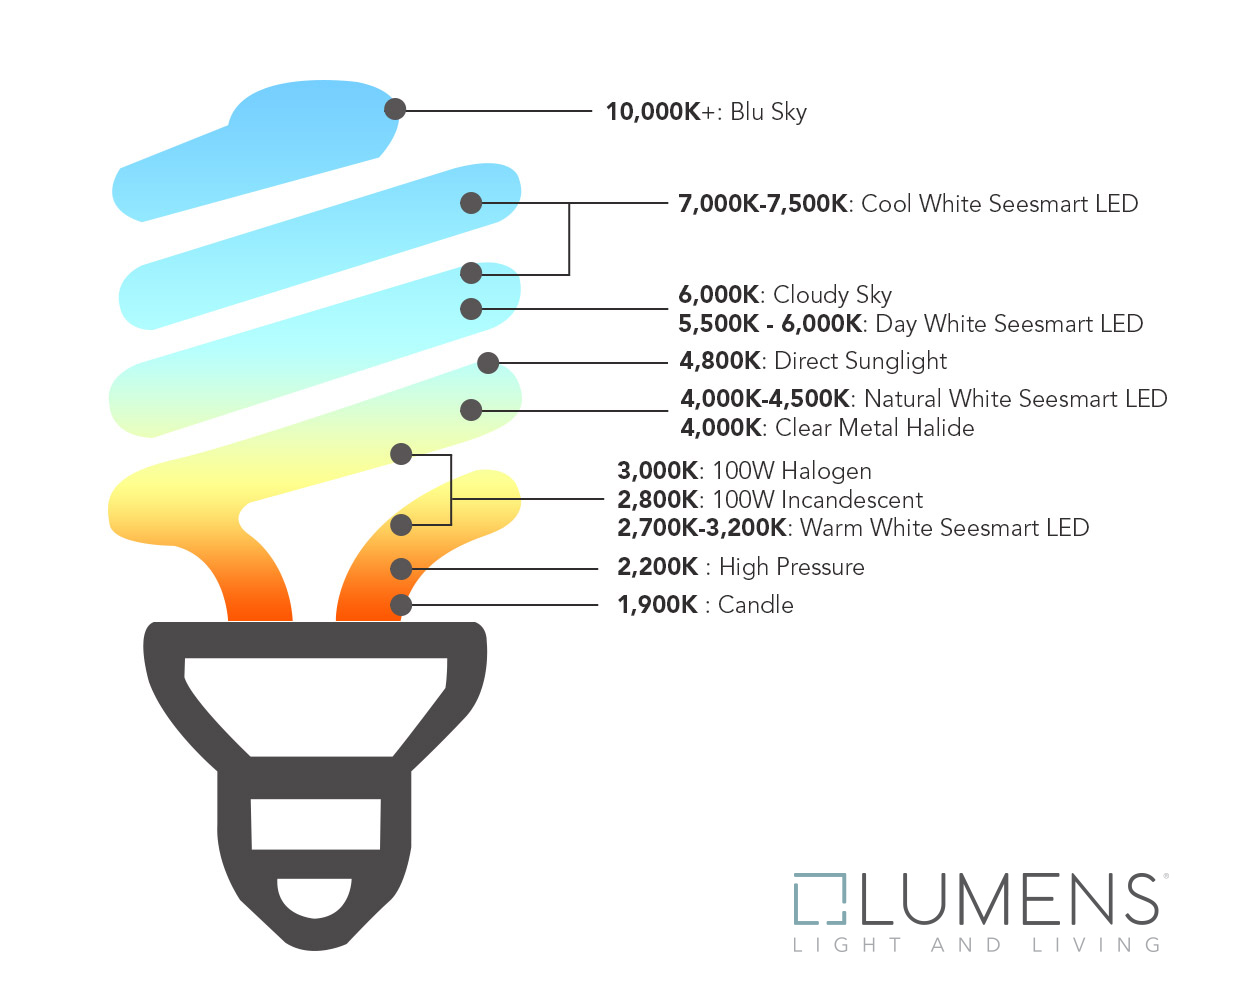 Led Kelvin Kelvin Color Temperature | Lighting Color Scale At Lumens.com